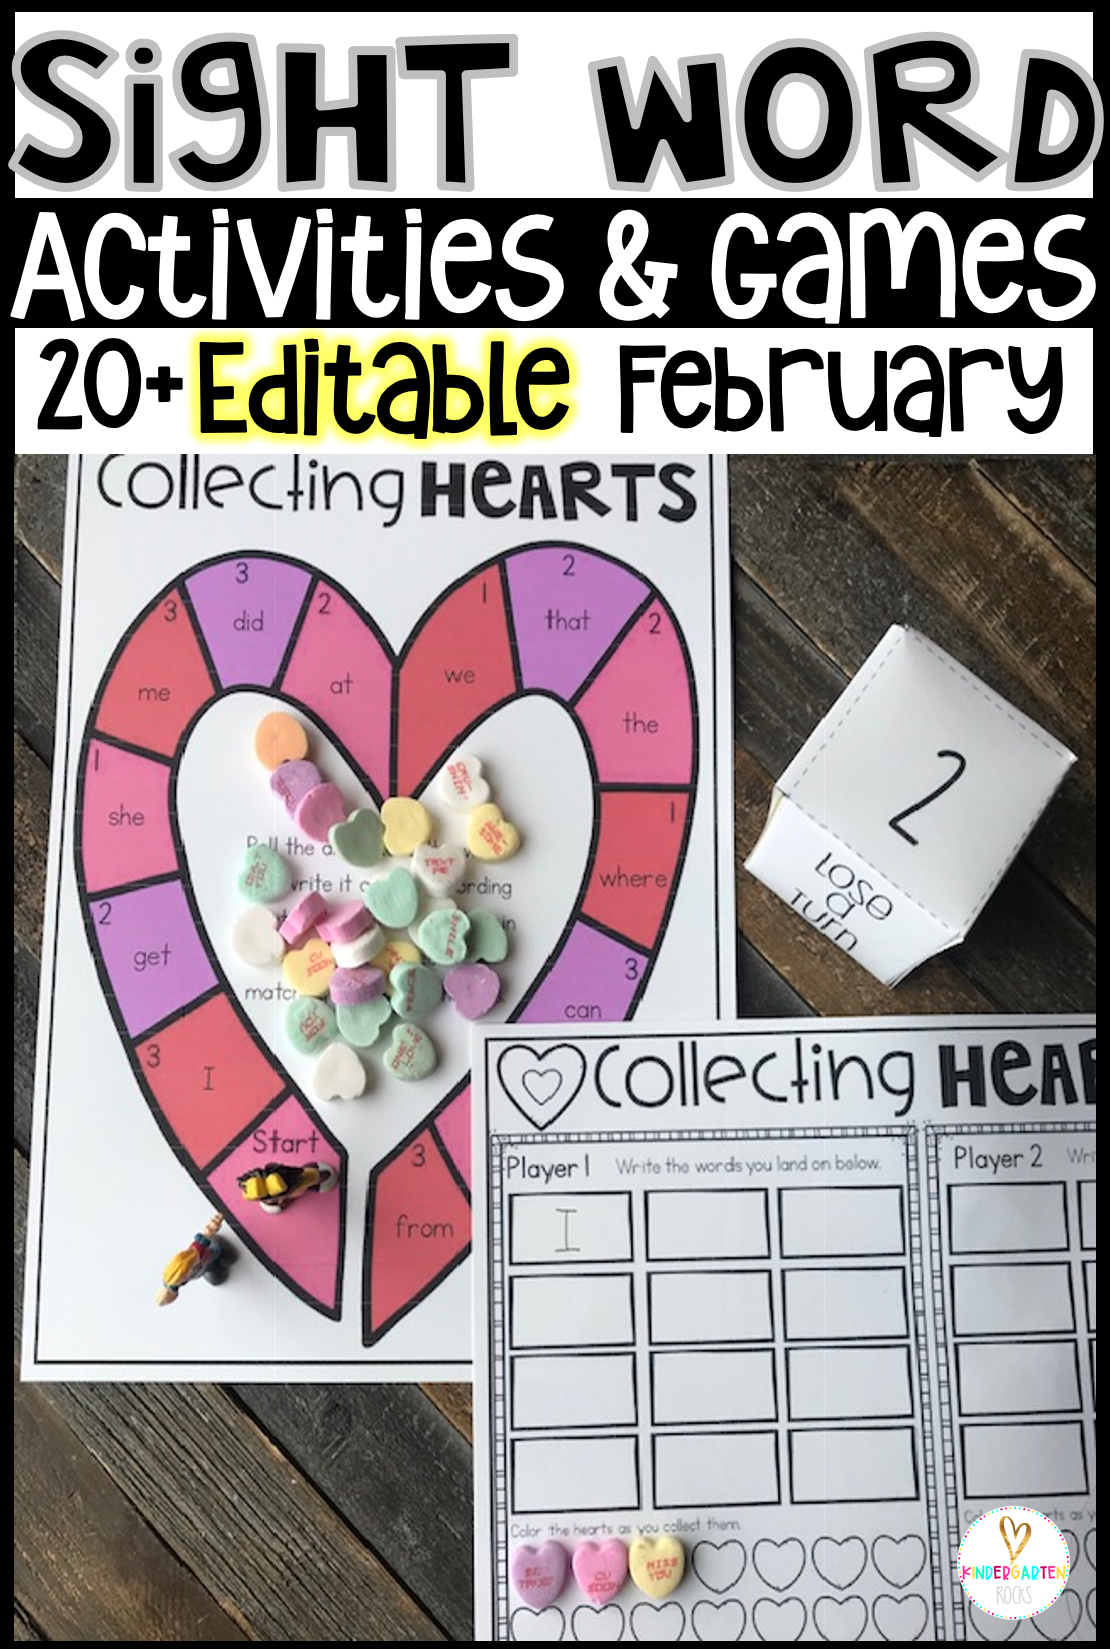 Are you looking for Valentine's Day sight word games and activities that you can change to meet the needs of your kindergarten or first grade students? Then, you will love Editable Sight Word Activities, Printables and Games for February. Type in 20 sight words on one list and they will spread throughout all of the activities.